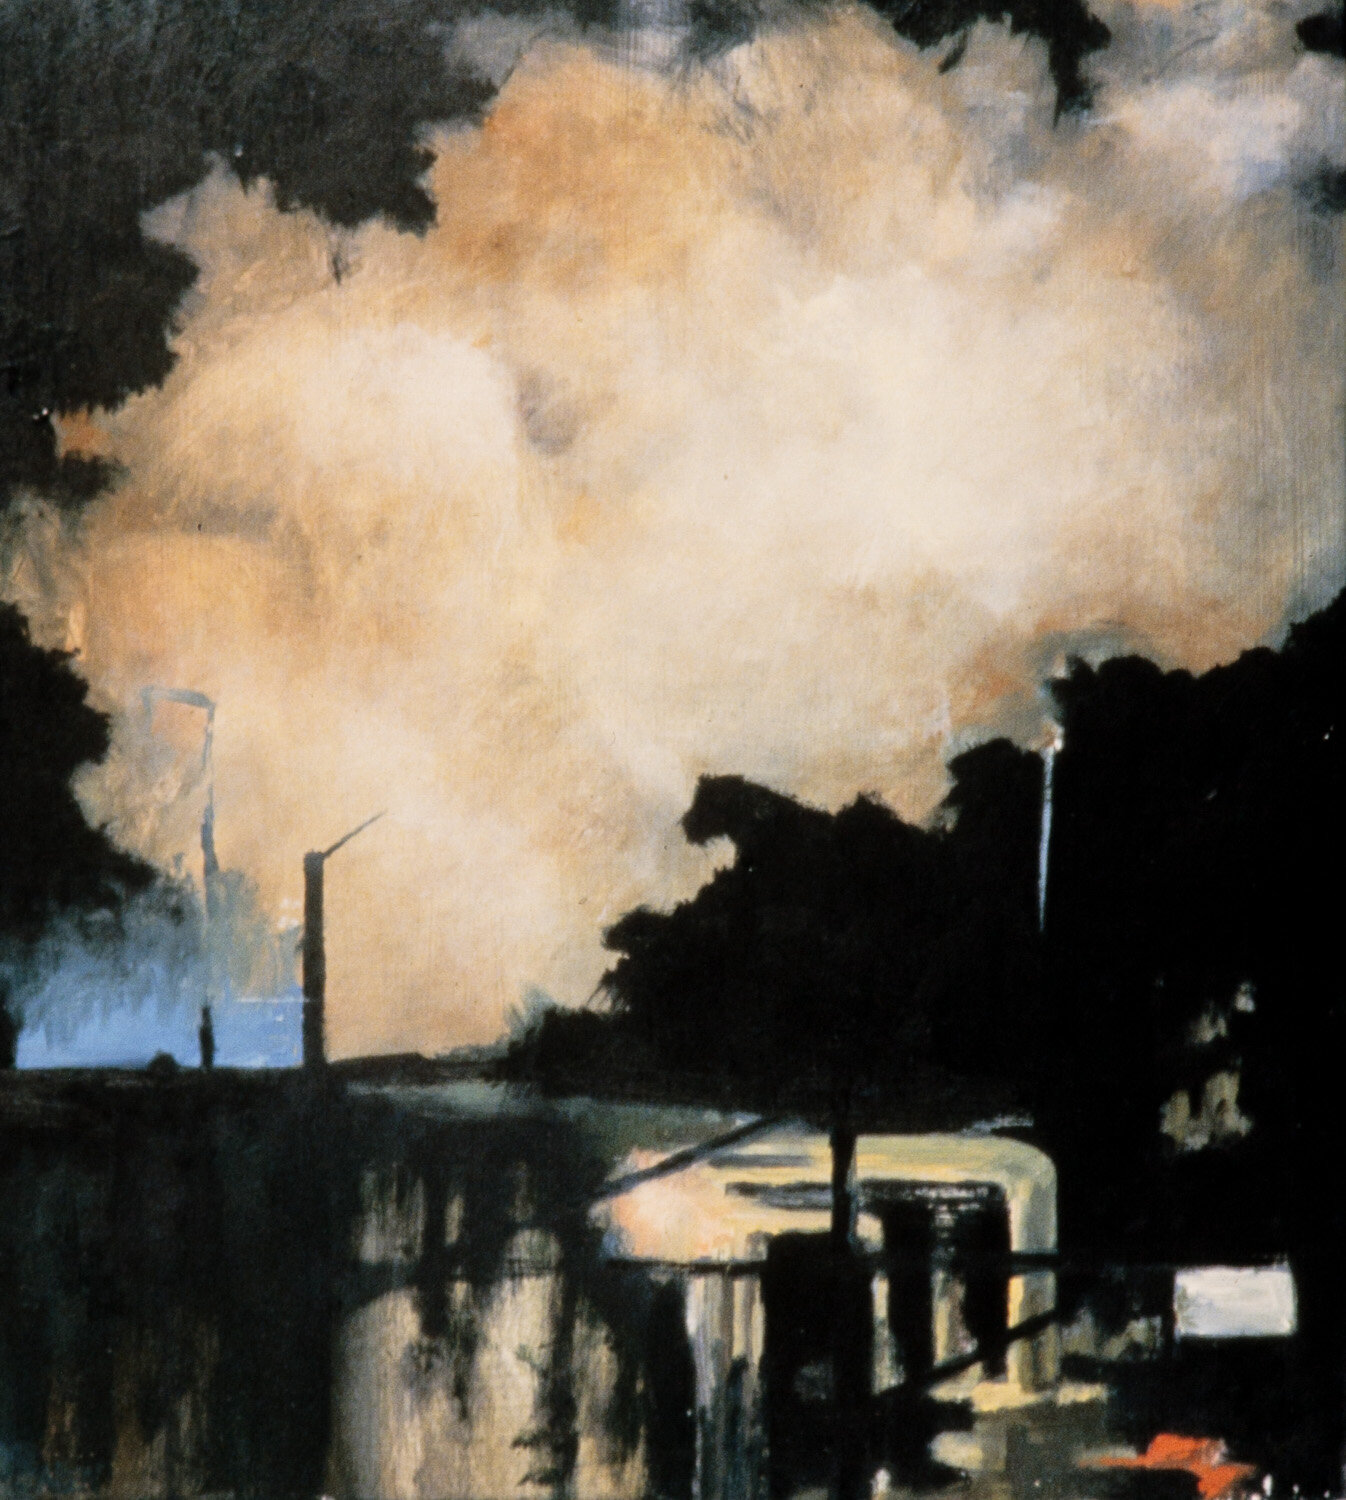 Steam No2, 1995